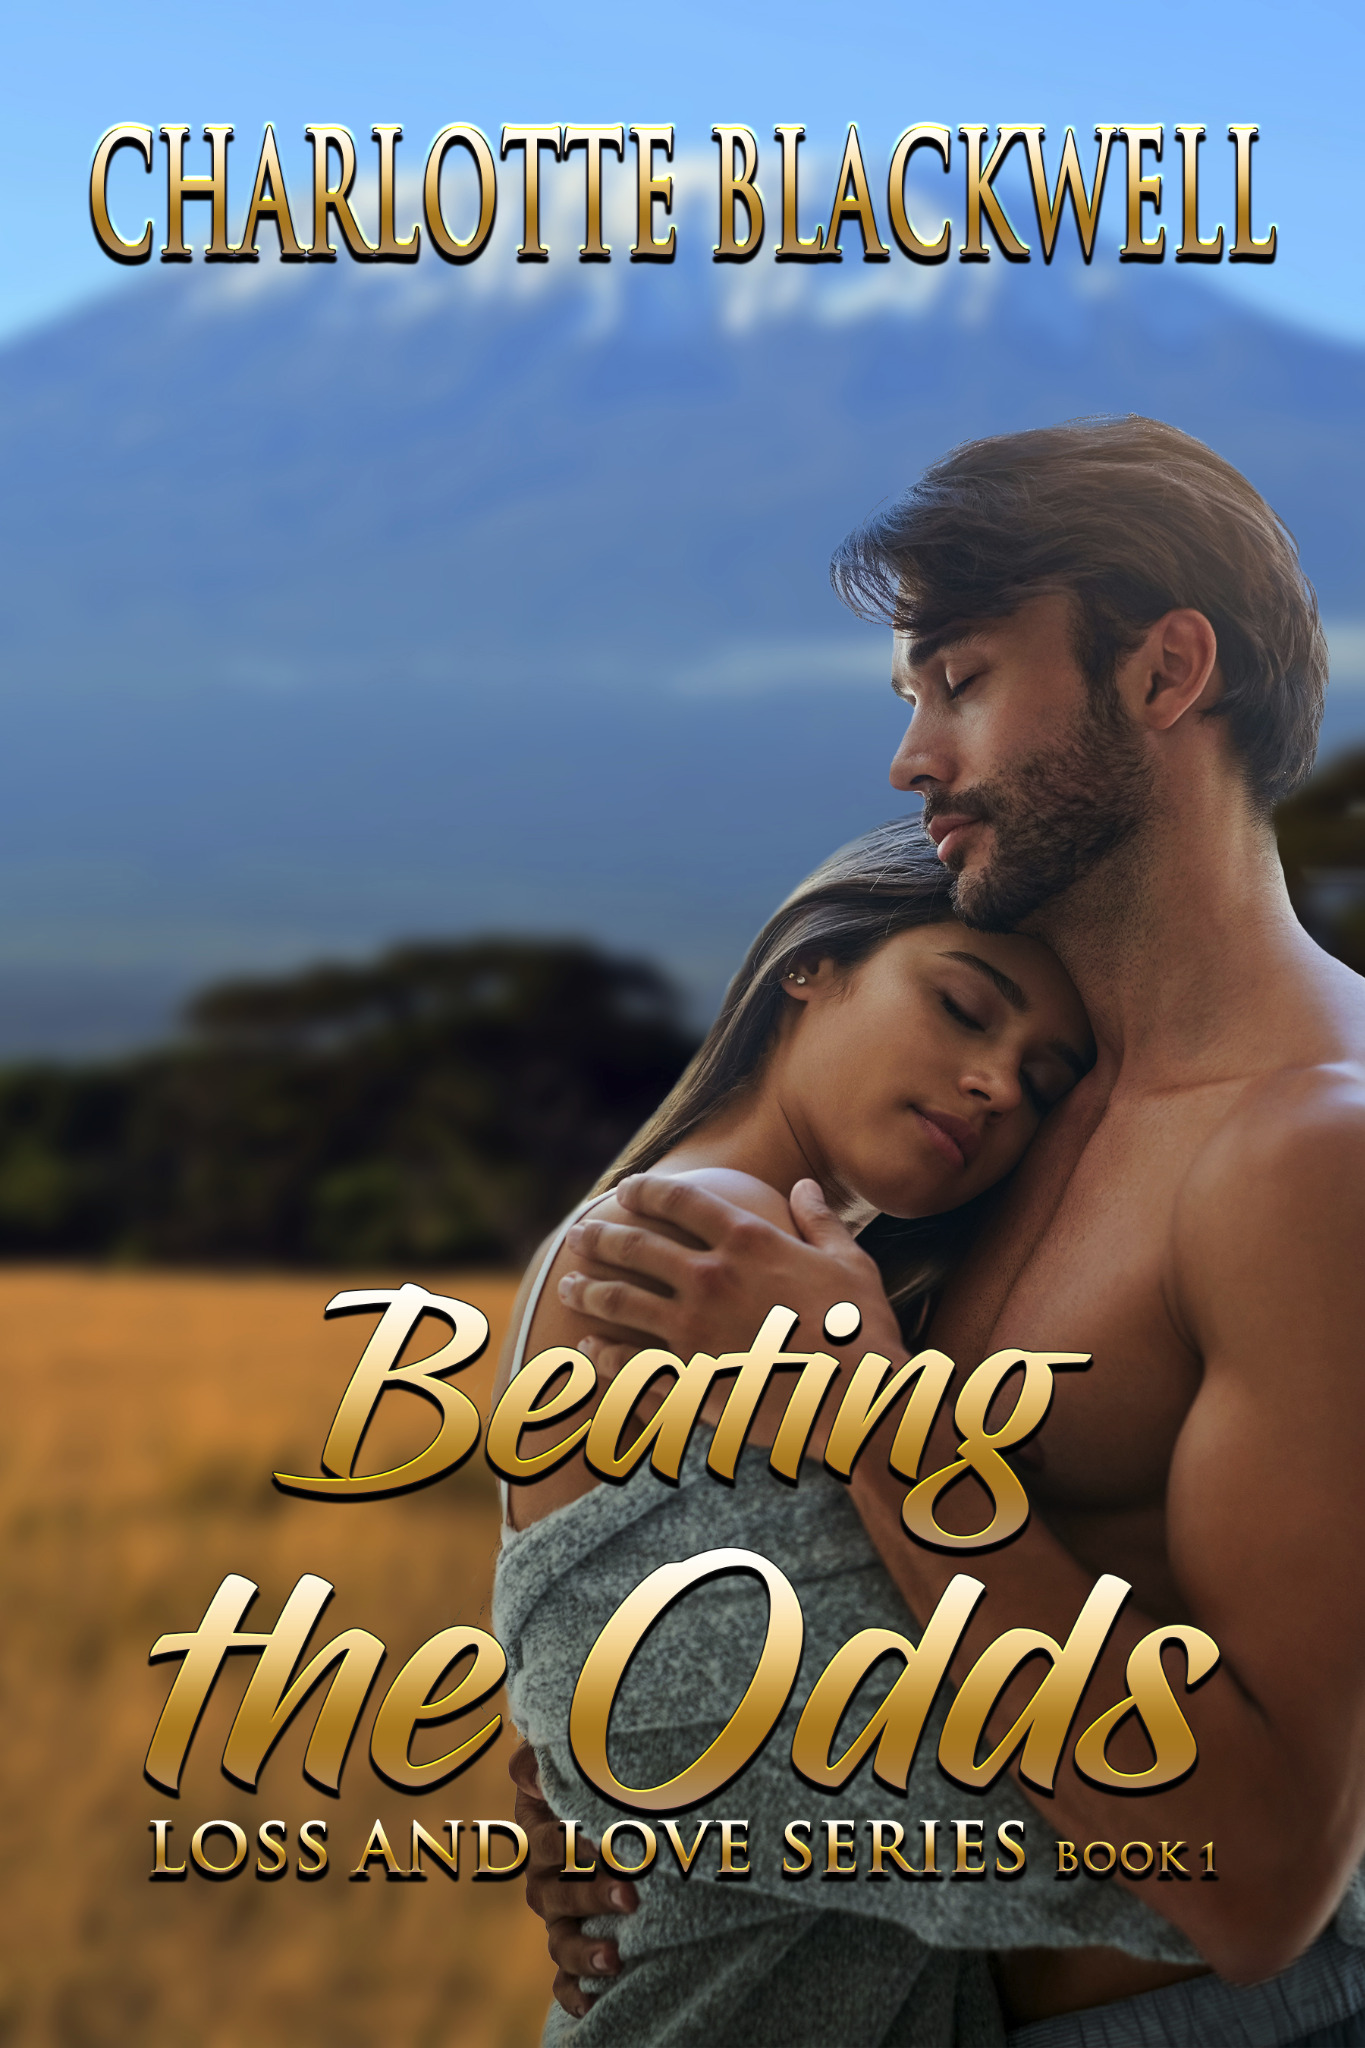 Beating the Odds - Loss and Love Series Book 1